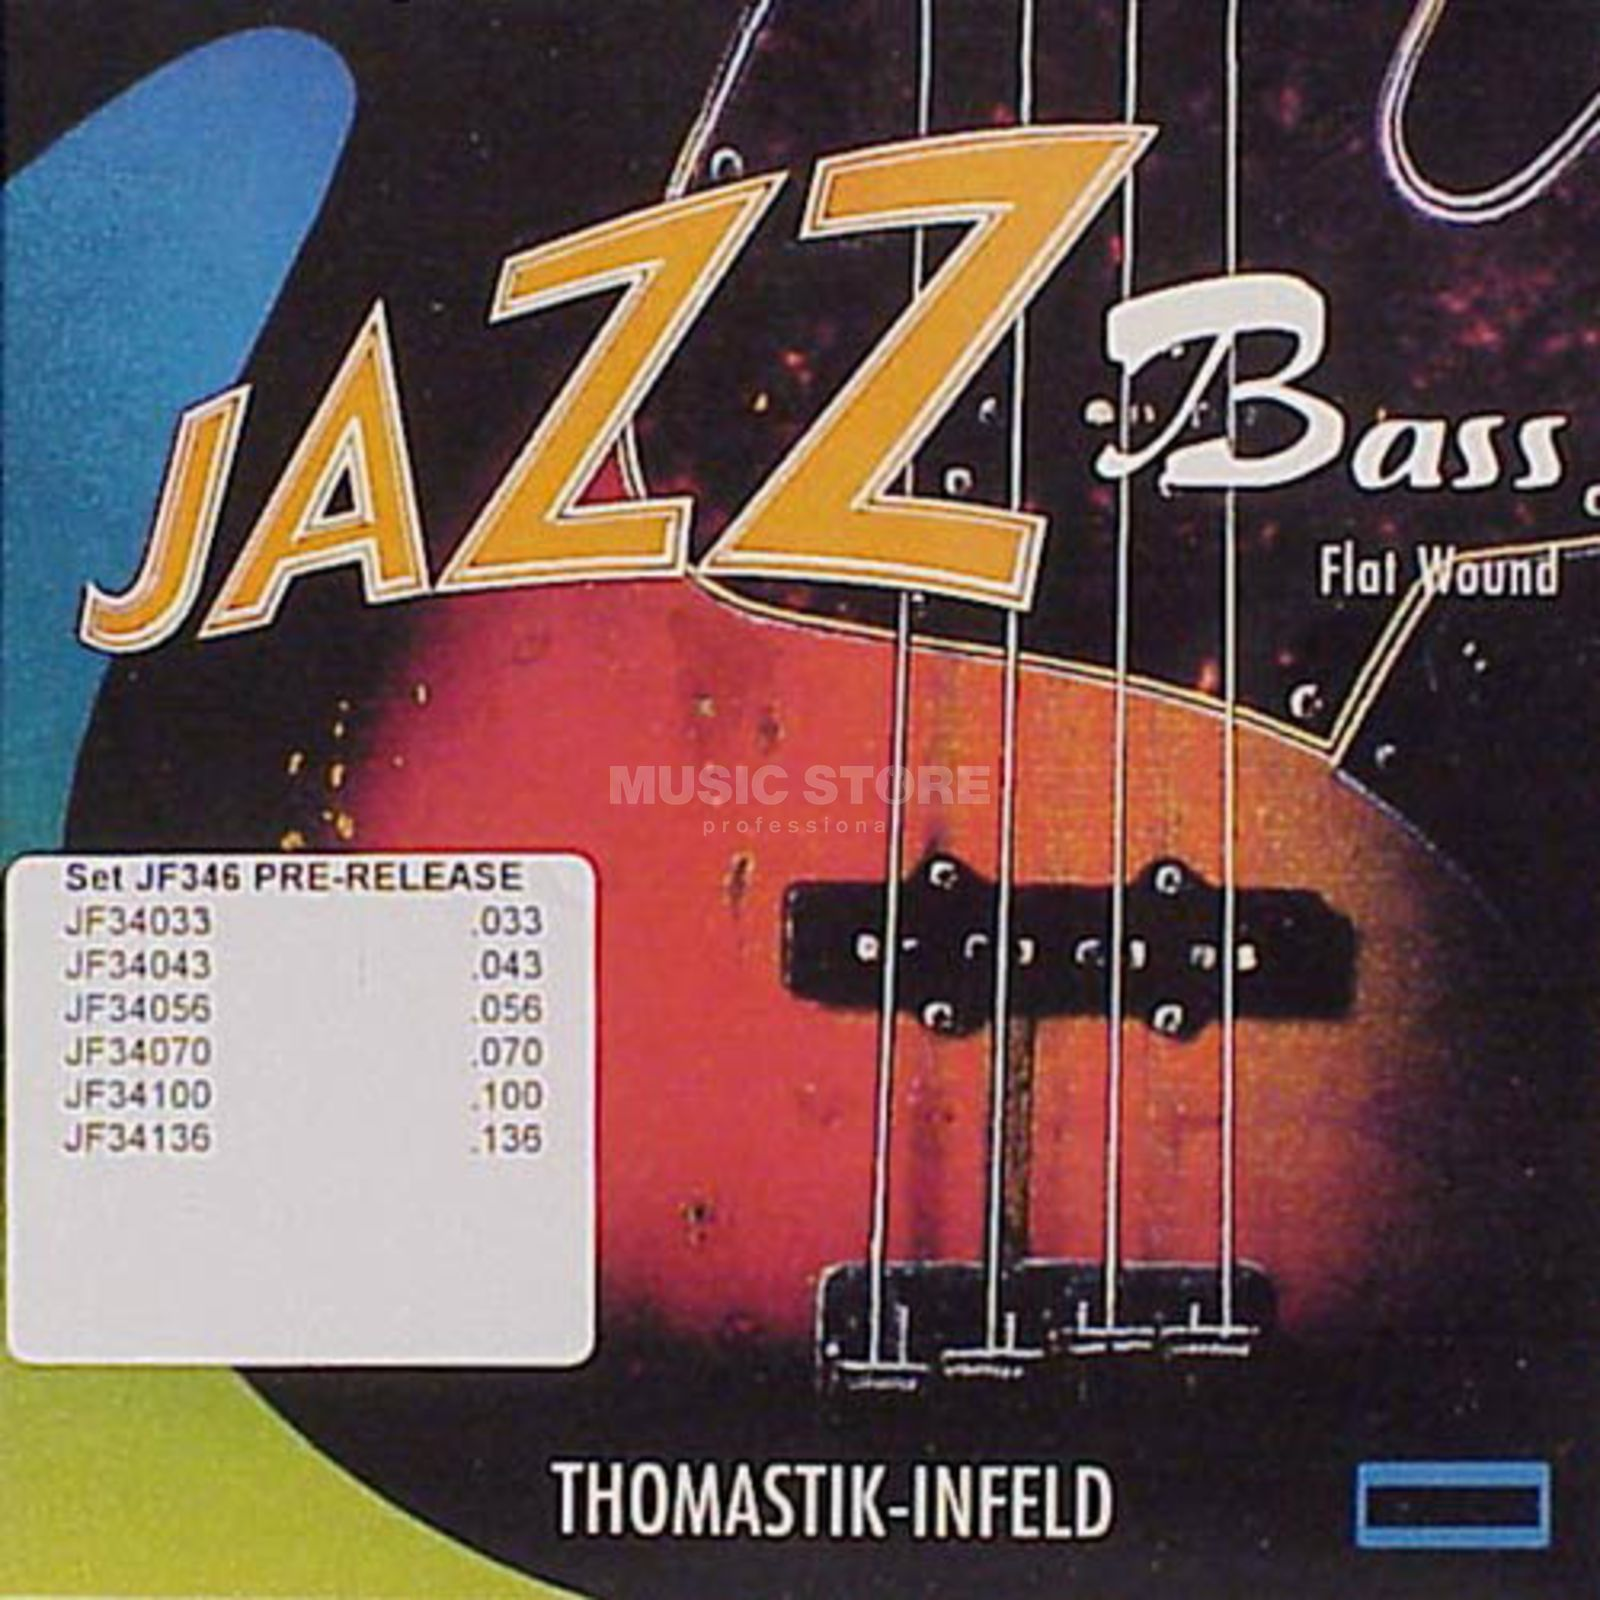 Thomastik 6er Bass JF 346 33-136 Nickel Flat Wound Produktbild